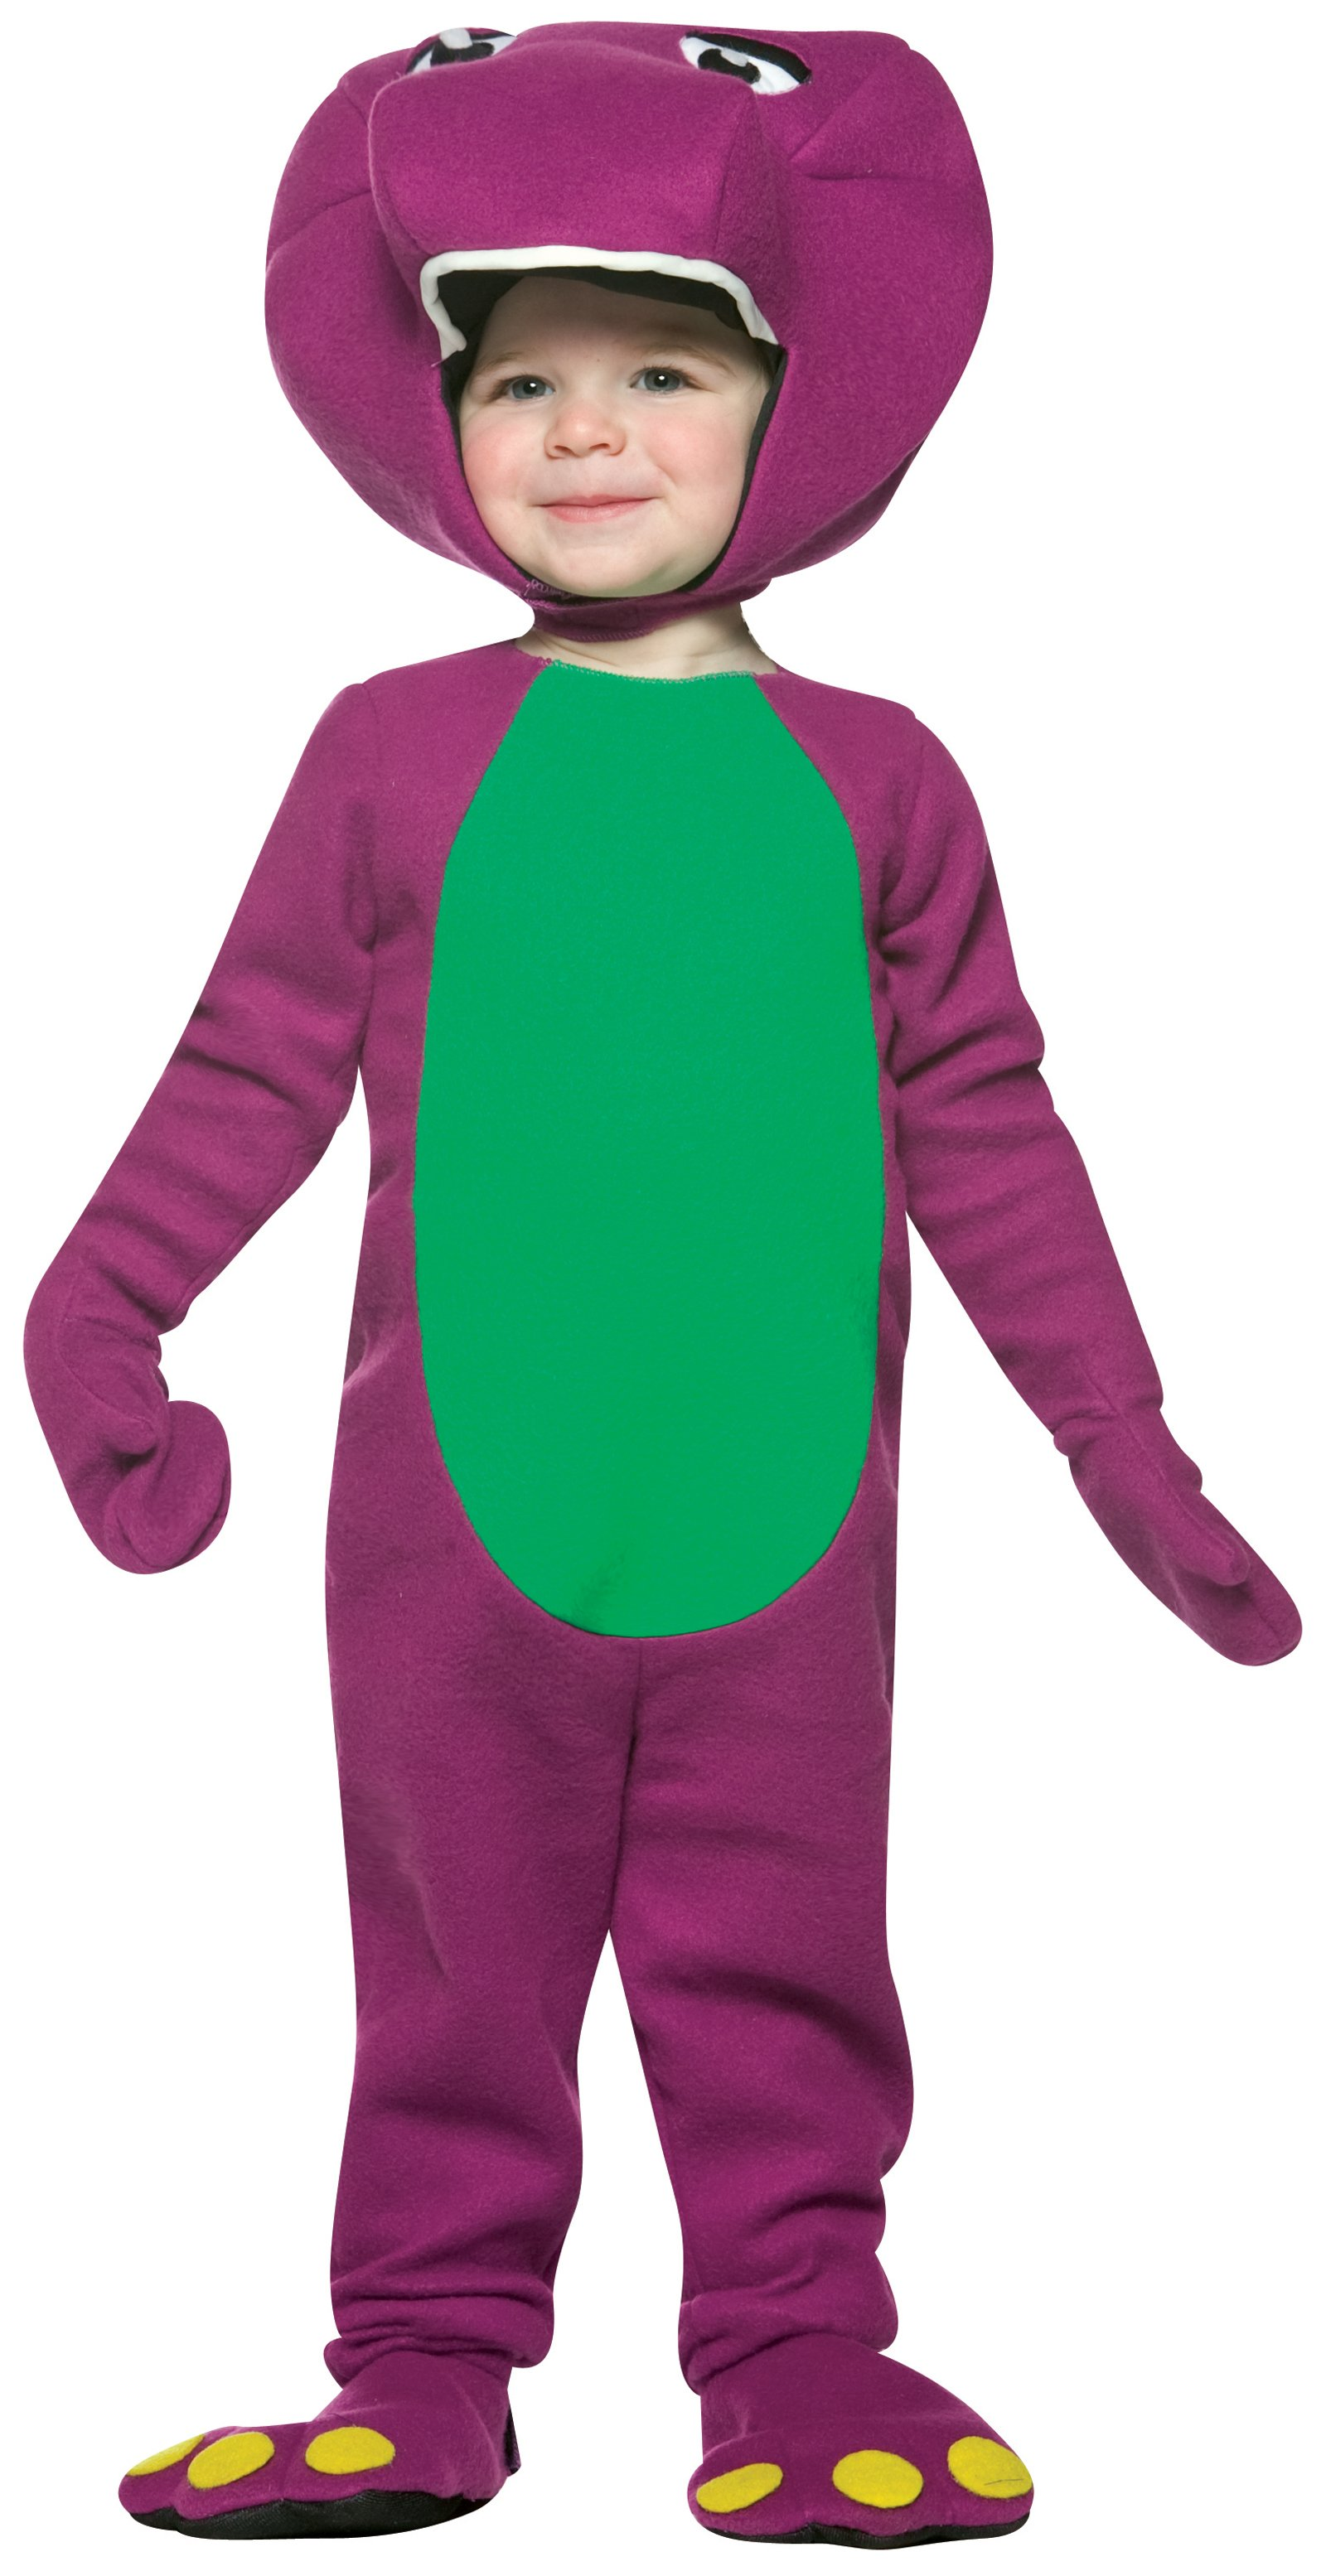 Barney and Friends-Barney Toddler Costume